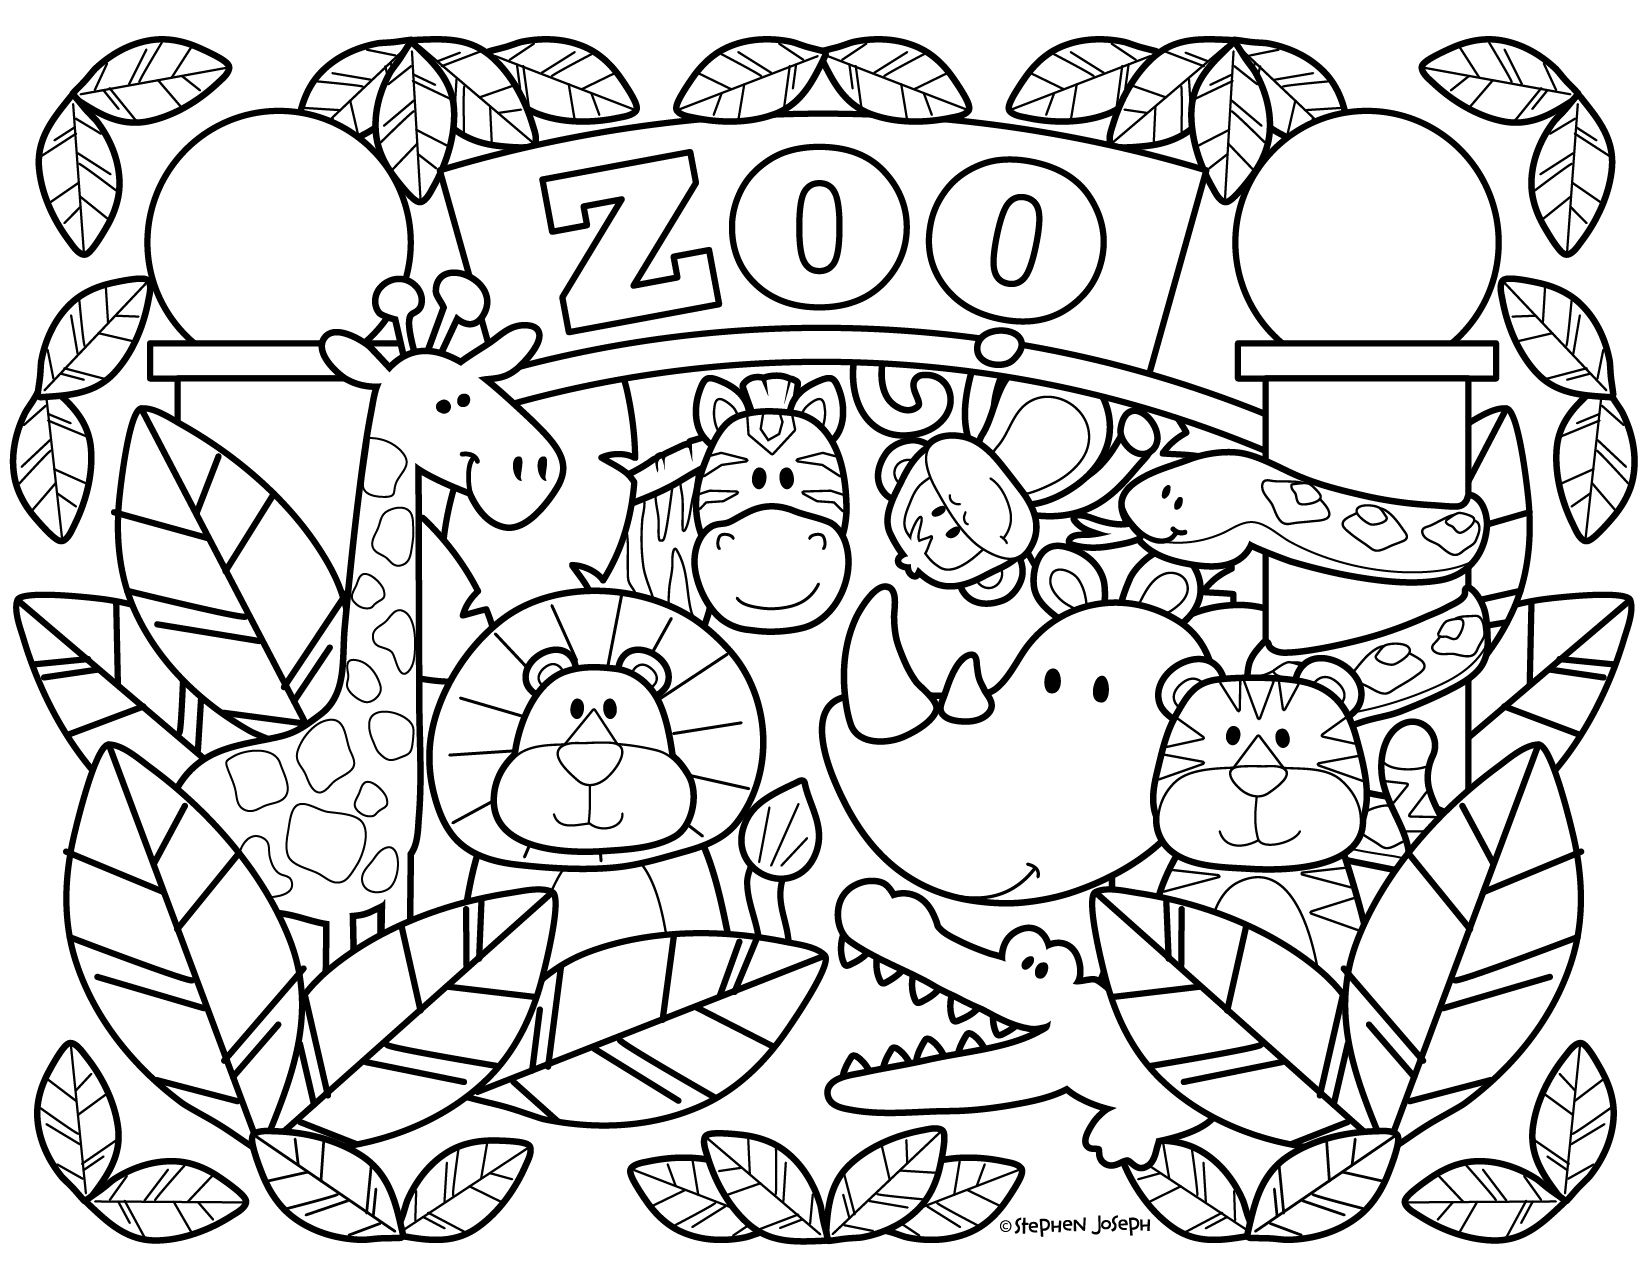 Zoo Coloring Pages Printable & Free! By Stephen Joseph